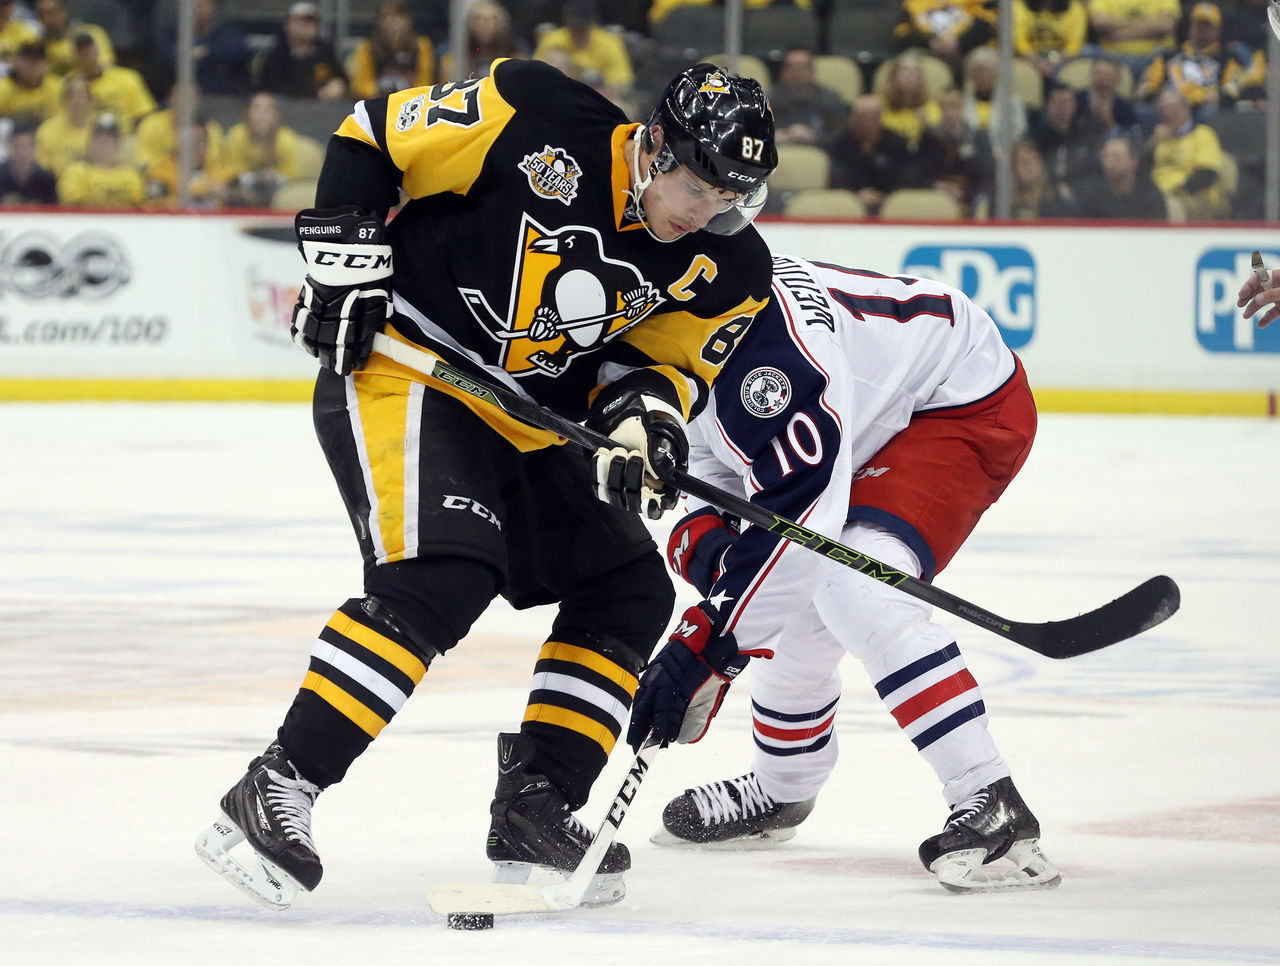 Cropped 2017 04 13t030202z 474591533 nocid rtrmadp 3 nhl stanley cup playoffs columbus blue jackets at pittsburgh penguins